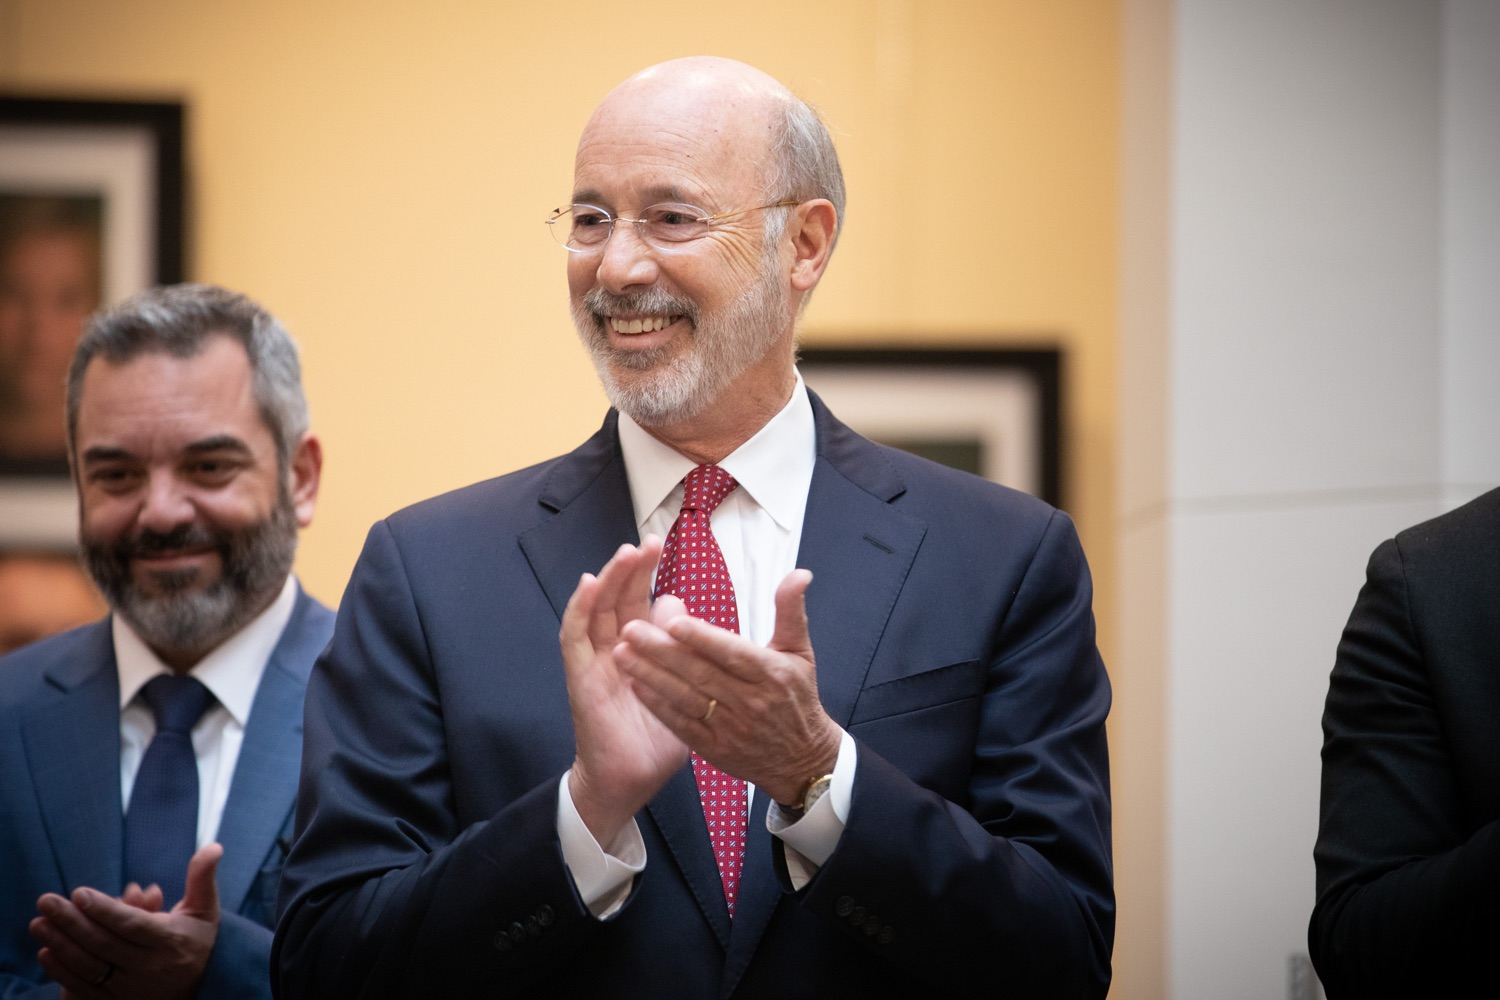 """<a href=""""https://filesource.wostreaming.net/commonwealthofpa/photo/17587_gov_pasmart_rural_robotics_dz_003.jpg"""" target=""""_blank"""">⇣Download Photo<br></a>Pennsylvania Governor Tom Wolf meeting with students at the robotics demonstration.  Celebrating the success of the PAsmart workforce development program to create educational opportunities at schools across the commonwealth, Governor Tom Wolf welcomed more than 50 students from the Pennsylvania Rural Robotics Initiative to the Capitol today. The students from nine western Pennsylvania school districts showcased their skills in coding, robotics and drone technology. The Wolf administration awarded the initiative a $299,000 PAsmart Advancing Grant earlier this year. Harrisburg, PA  Tuesday, November 12, 2019"""